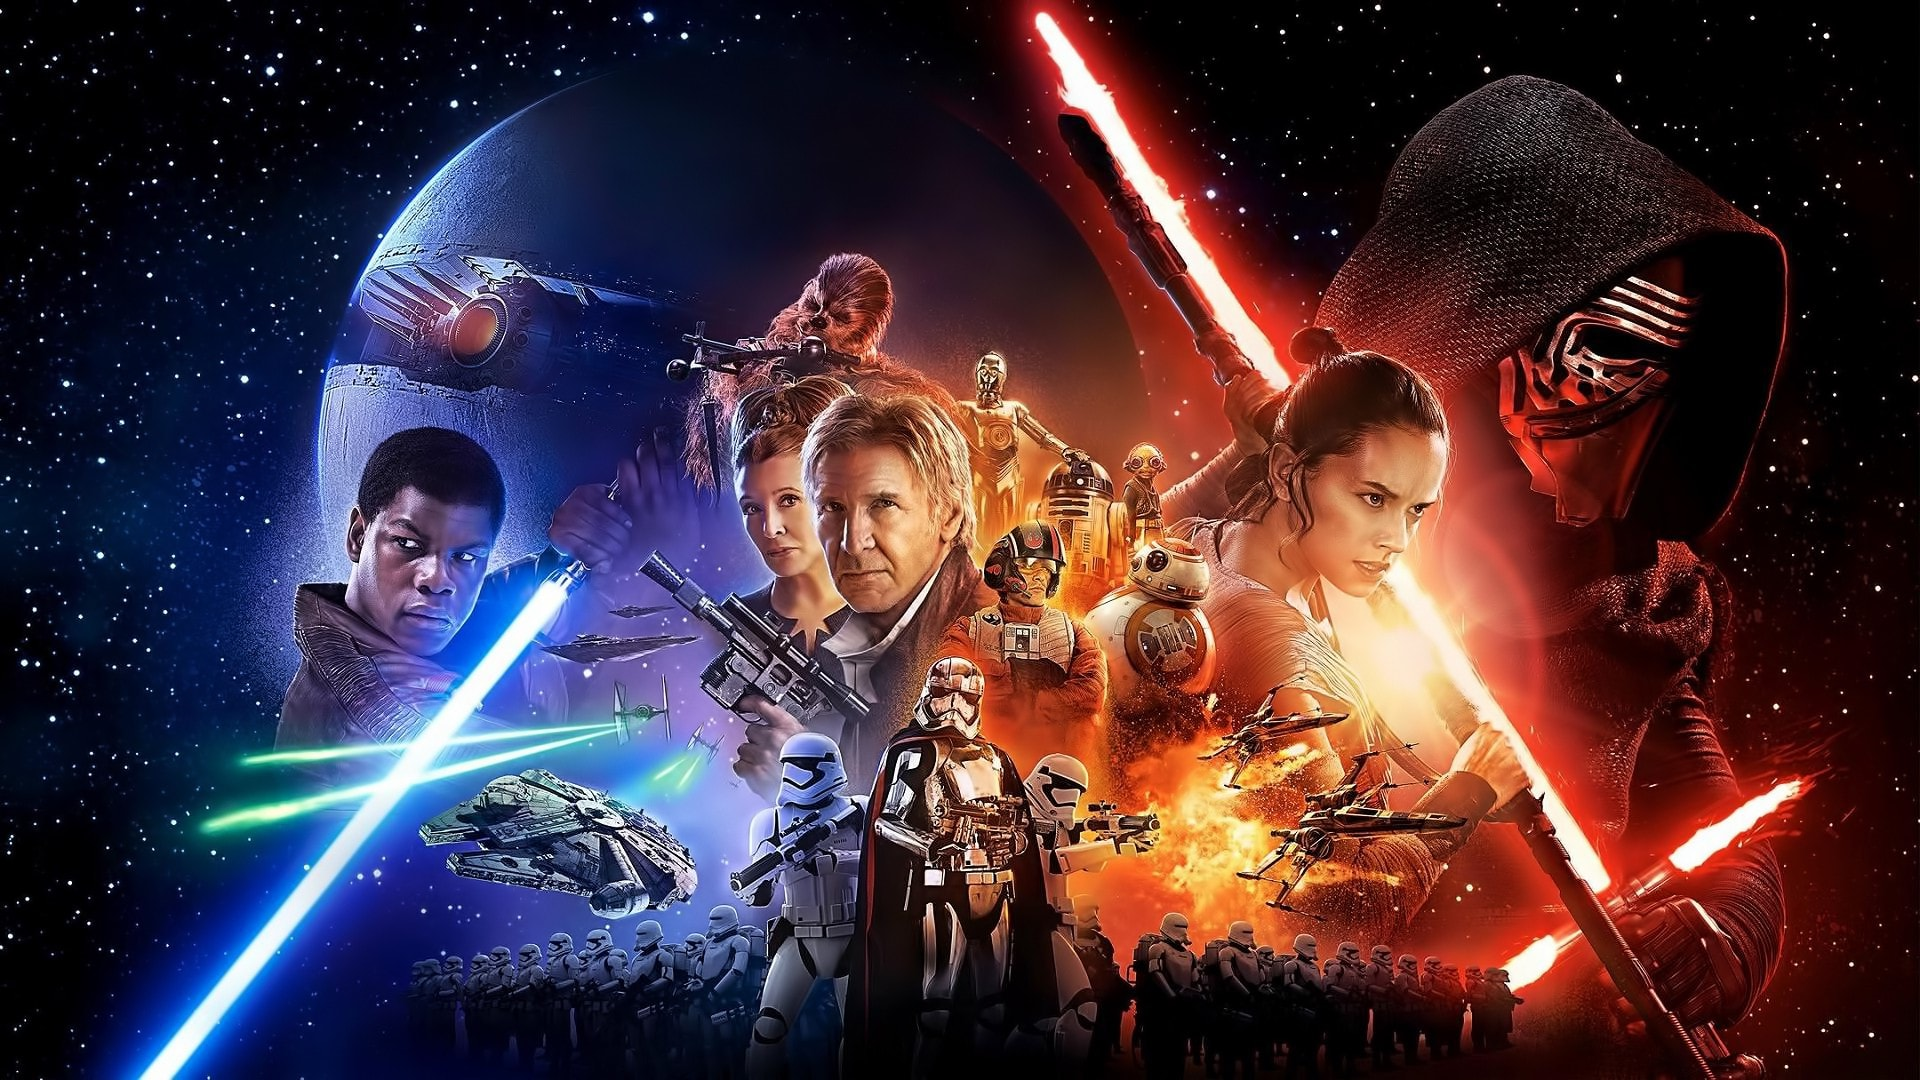 Star Wars Episode VII: The Force Awakens Download